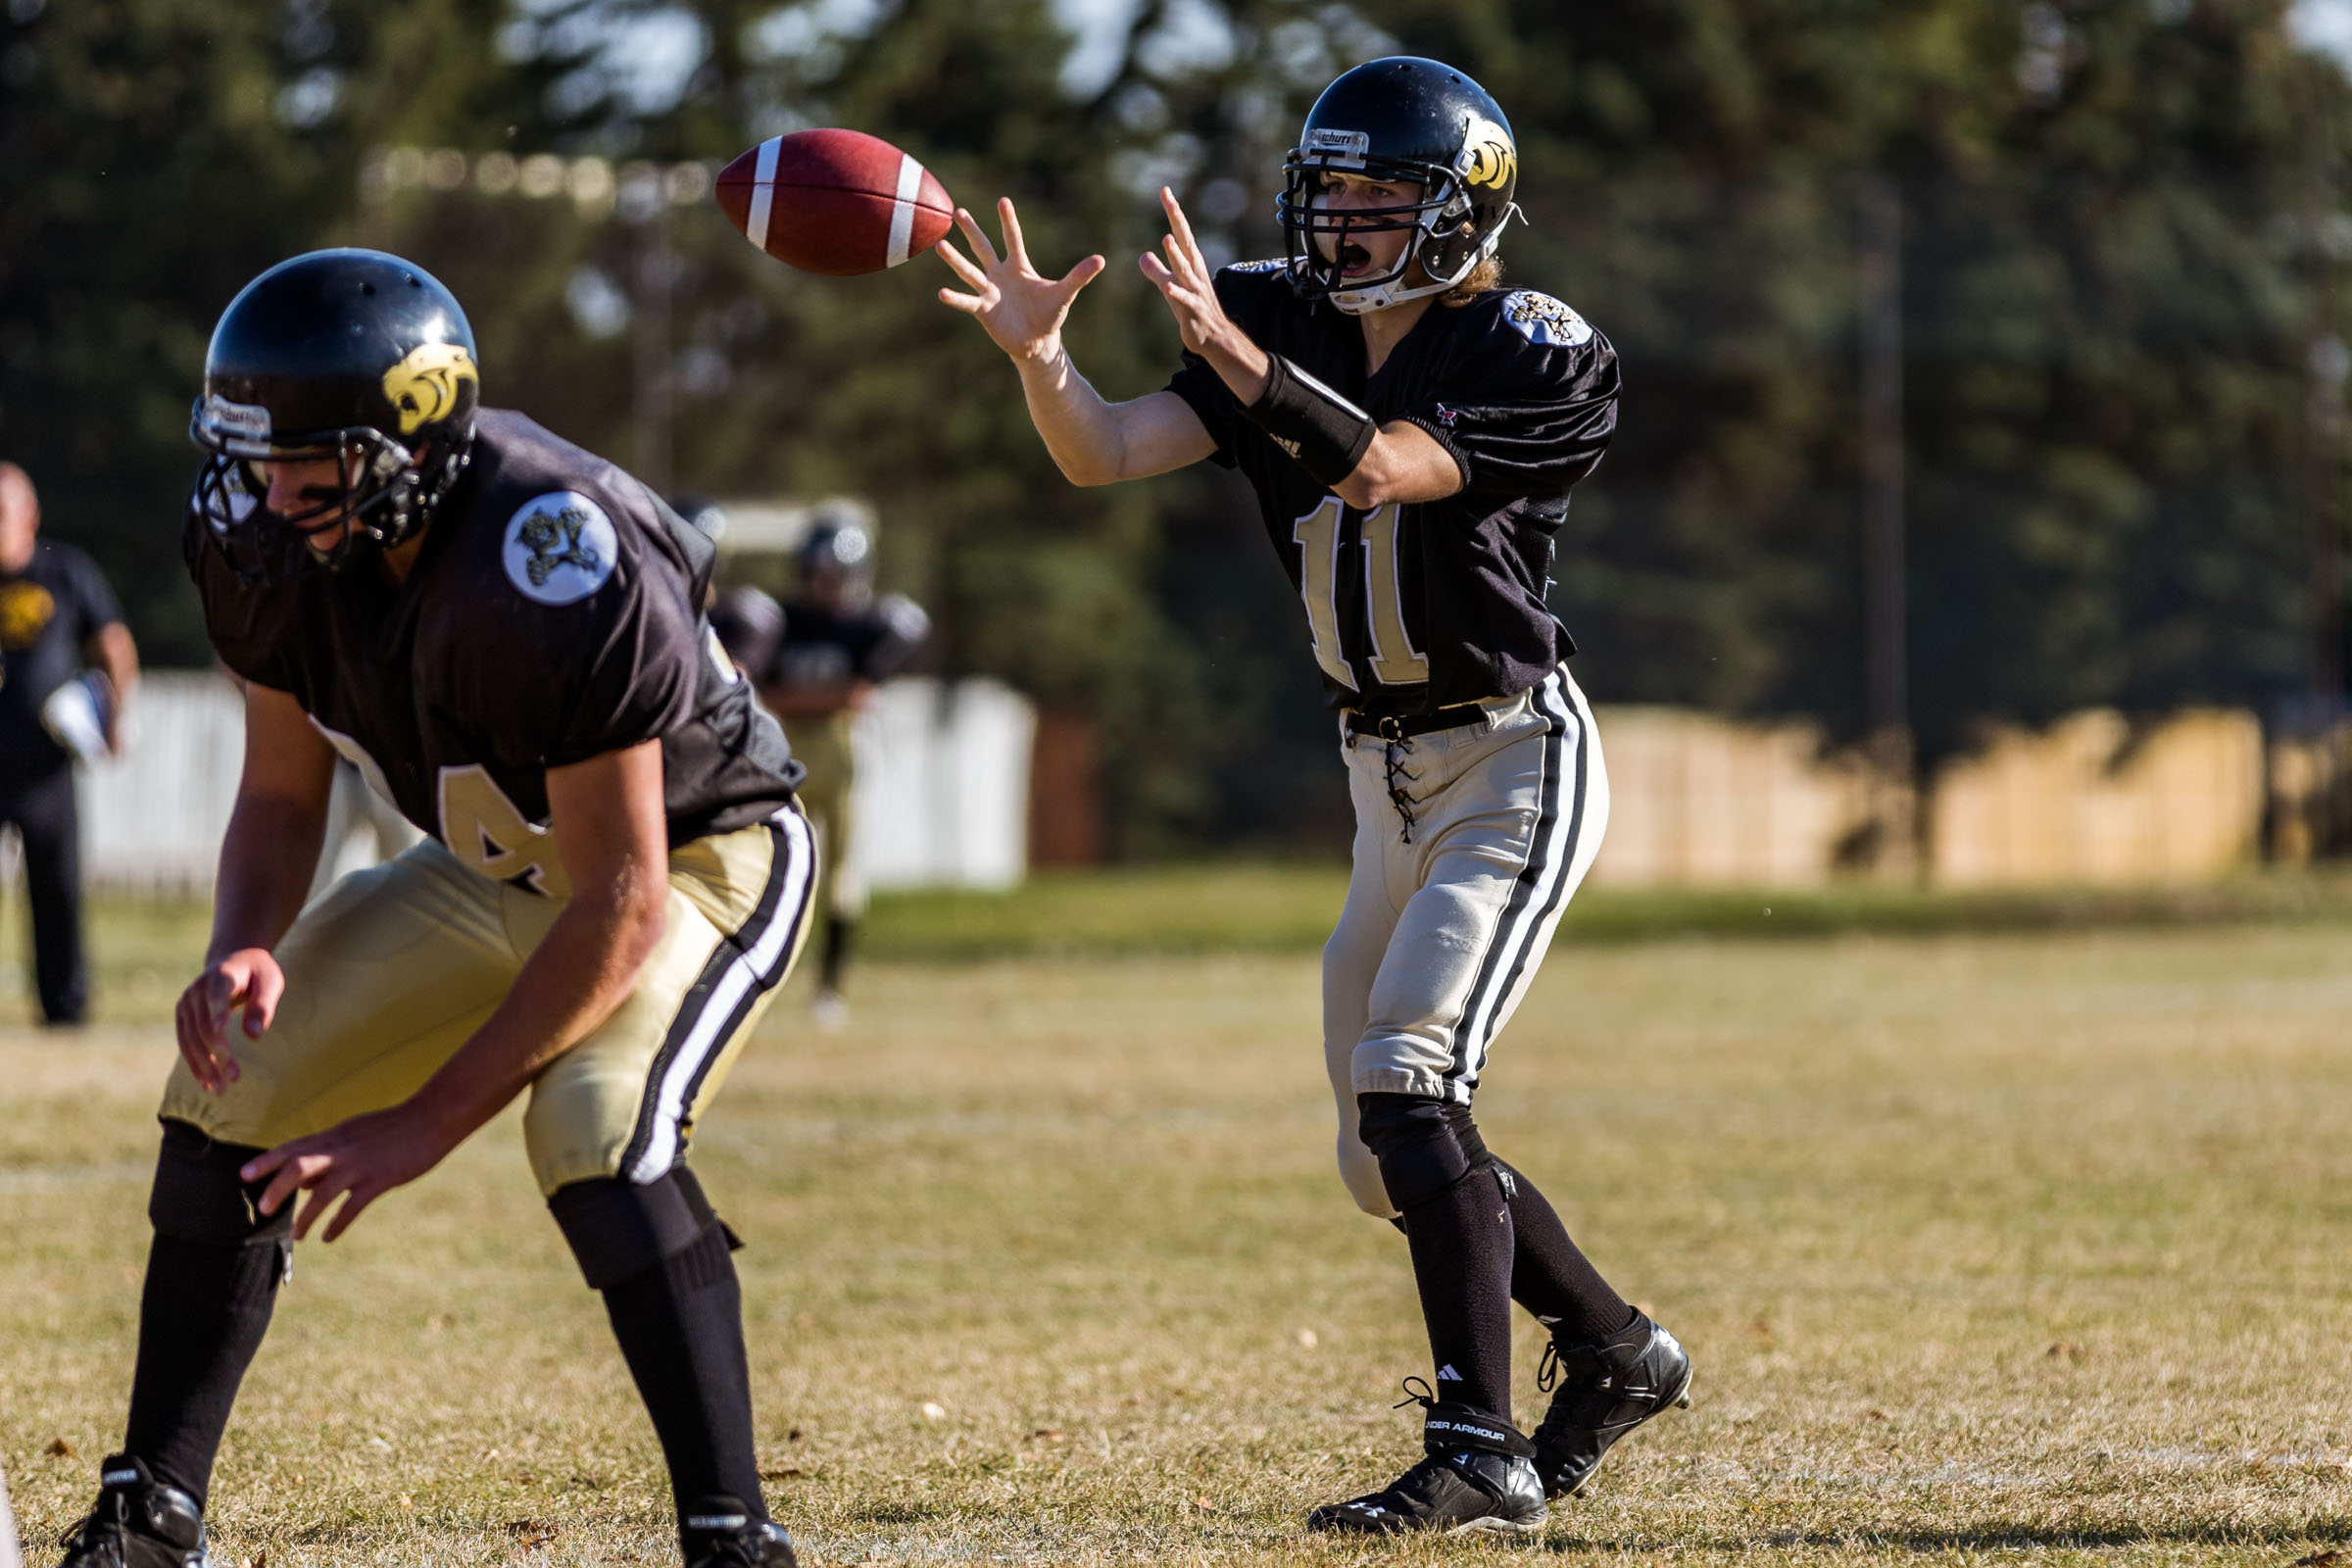 0041_macklinsabres_haguepanthers_football_September 30, 2016.jpg